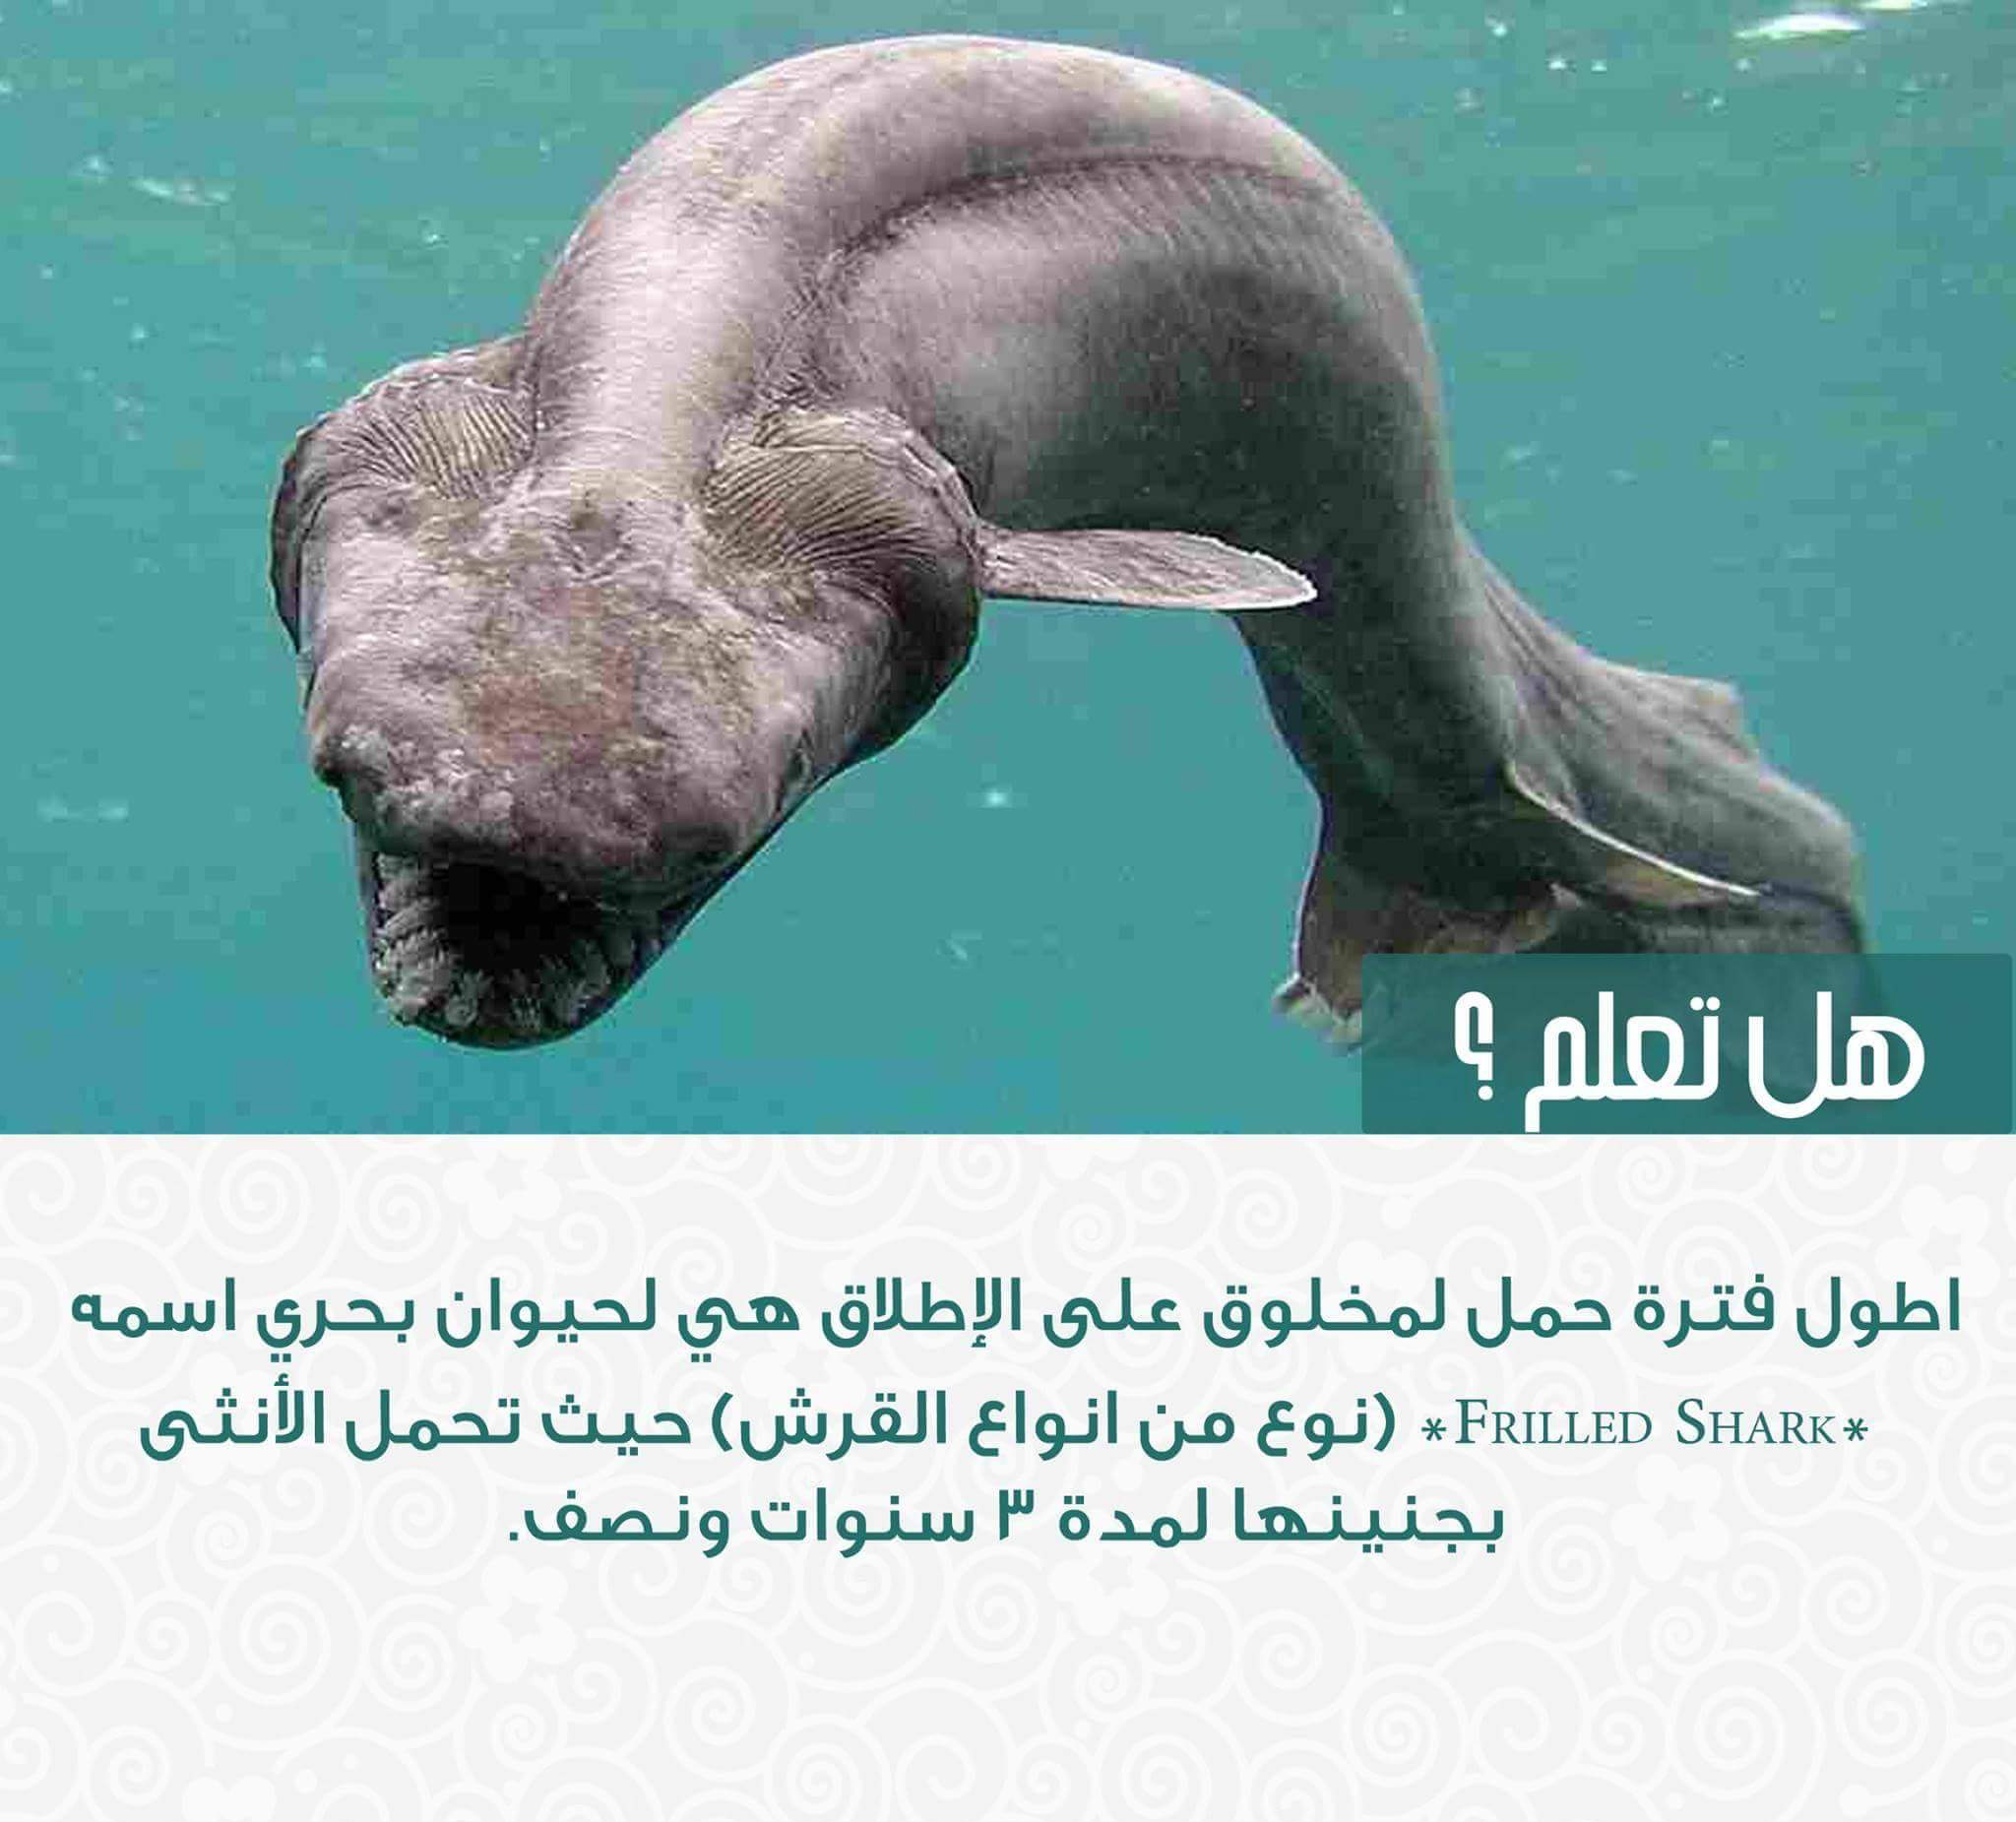 هل تعلم معلومات Frilled Shark Shark Dinosaur Era